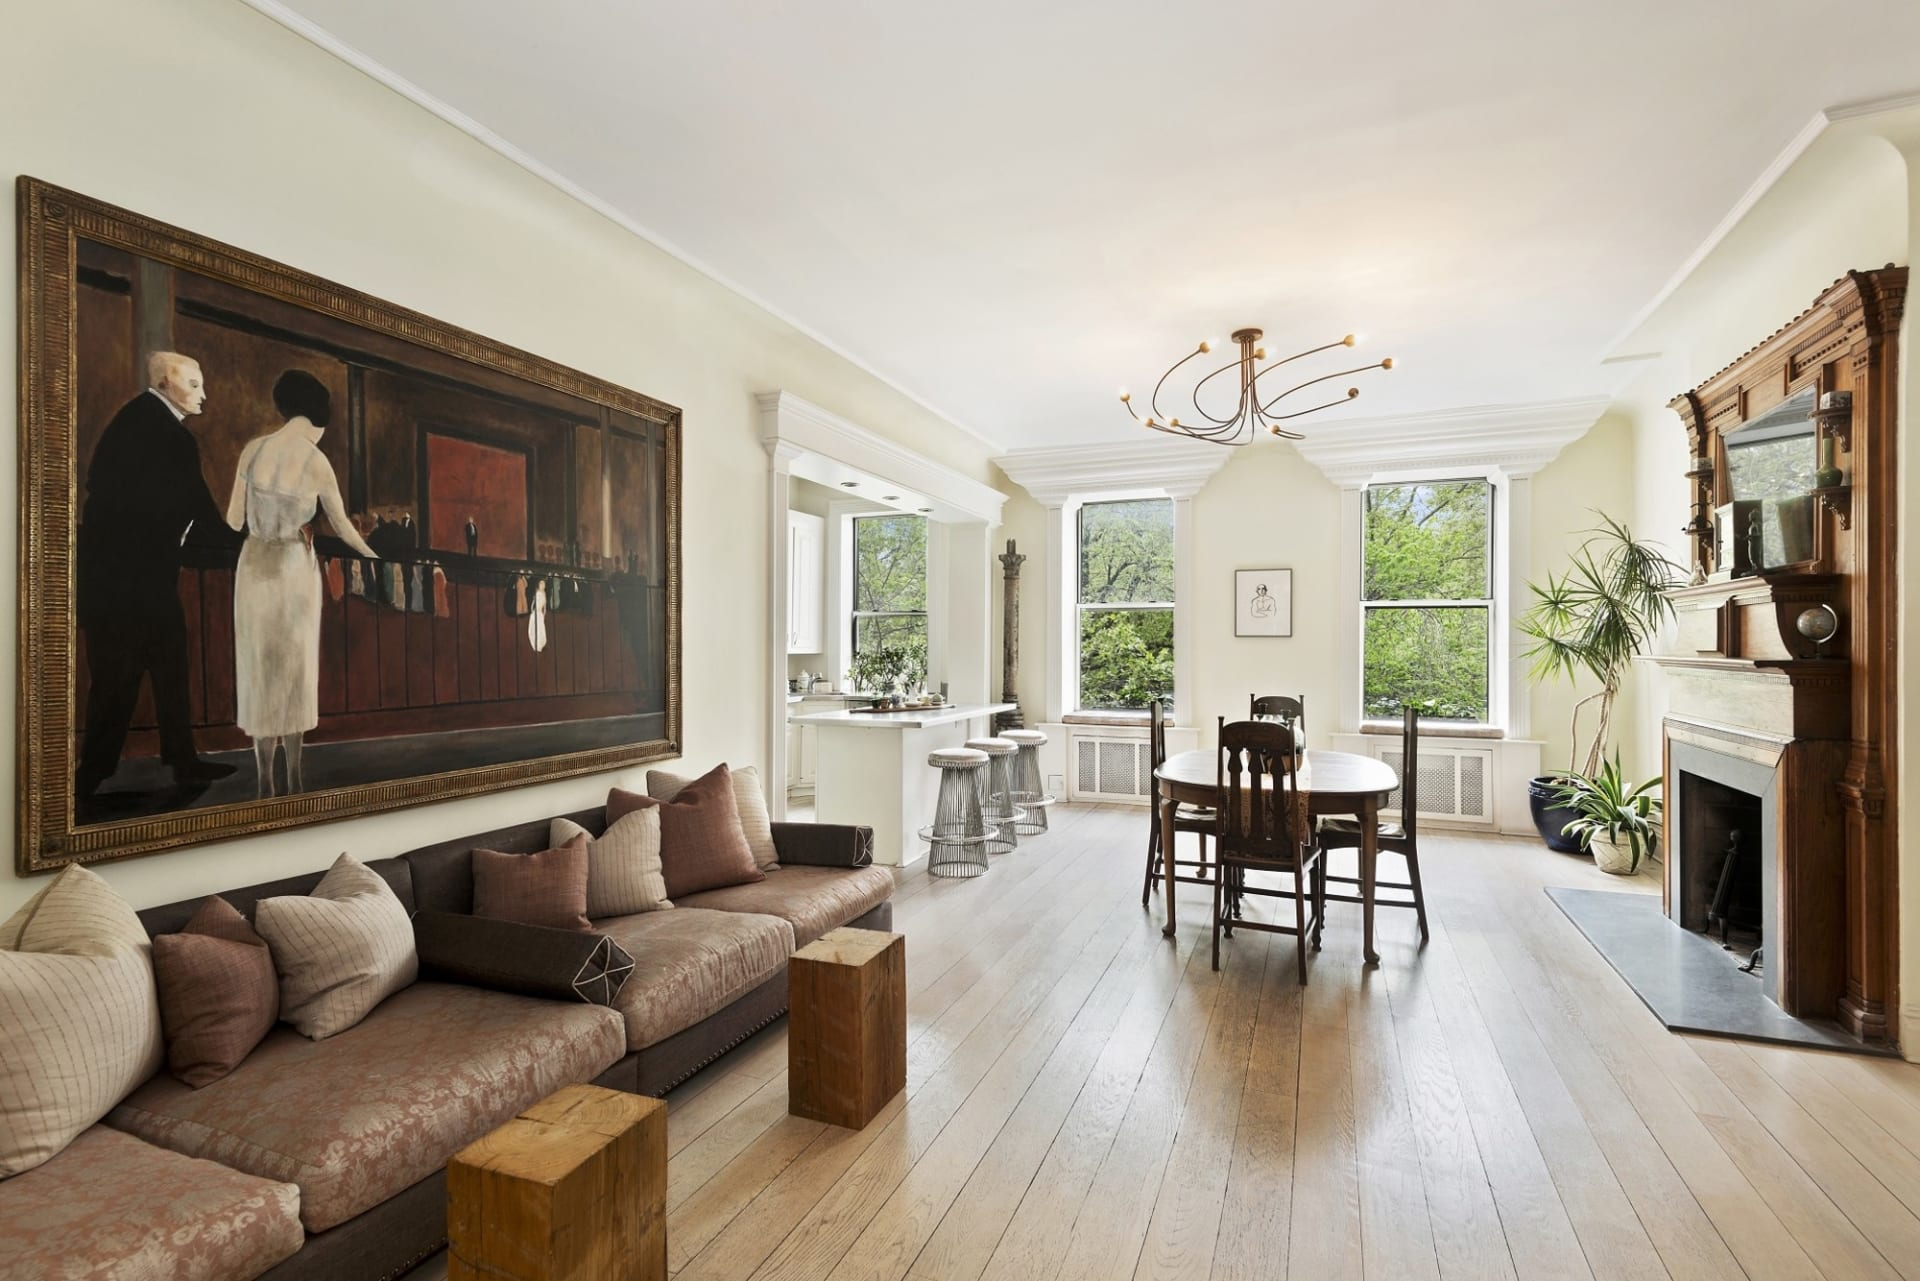 Alan Cumming Lists Charming East Village Co-op with Noble Black